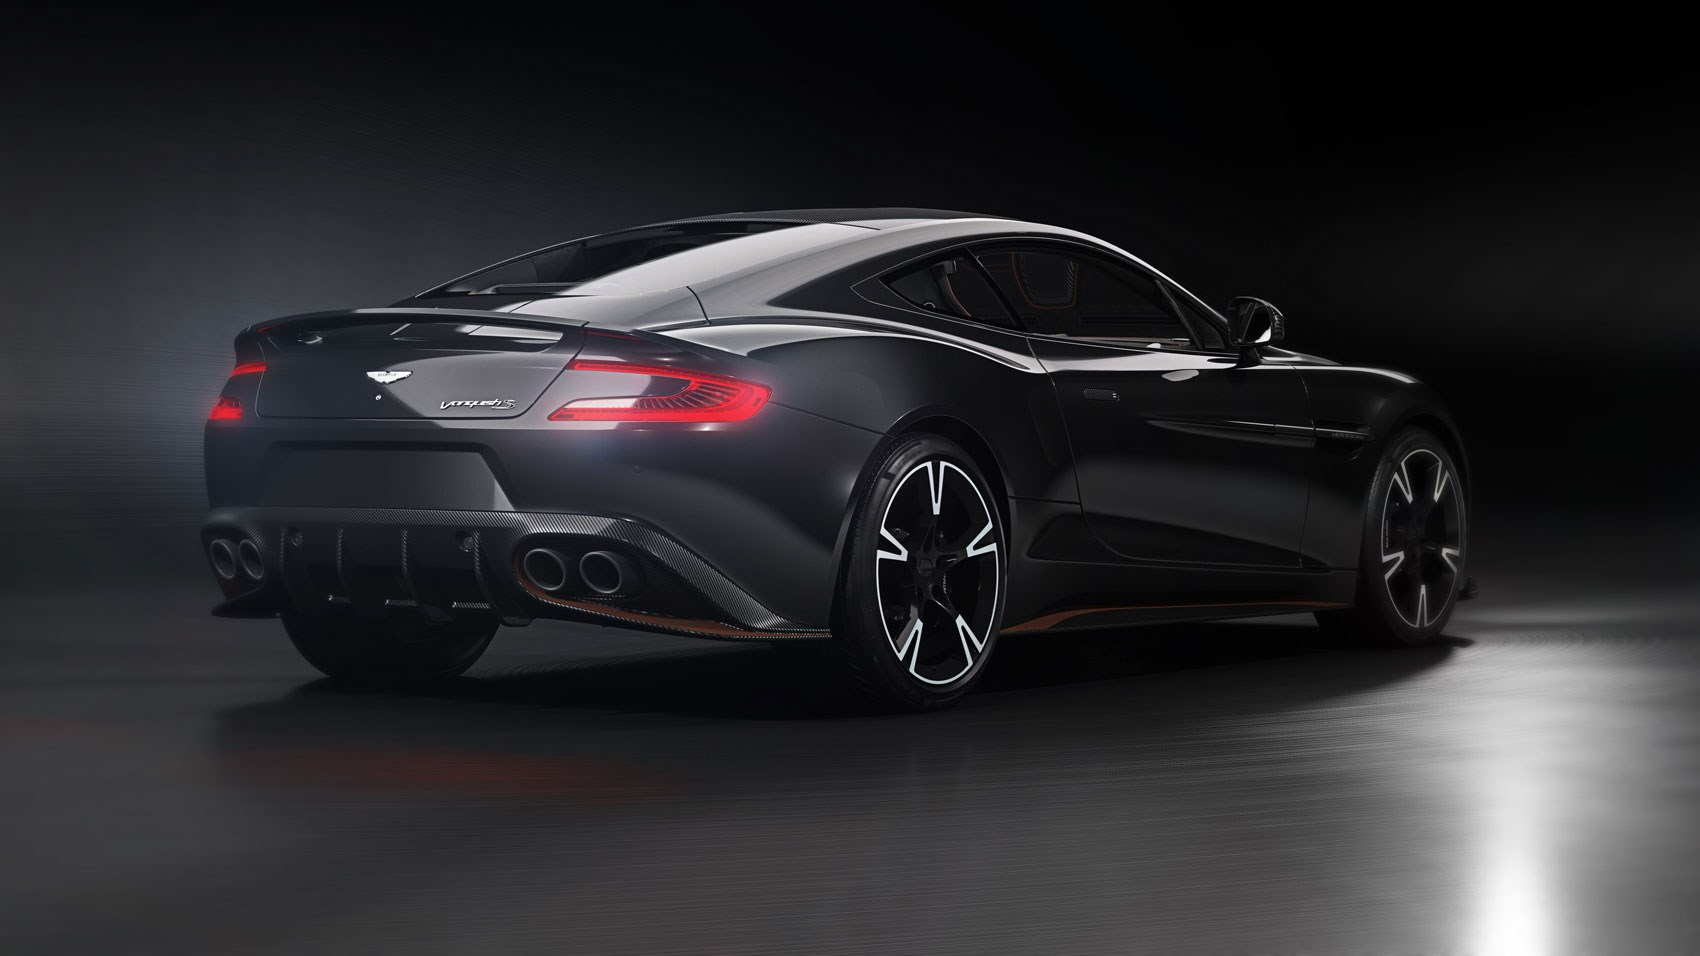 Aston Martin Vanquish S Ultimate Edition: A Final Farewell